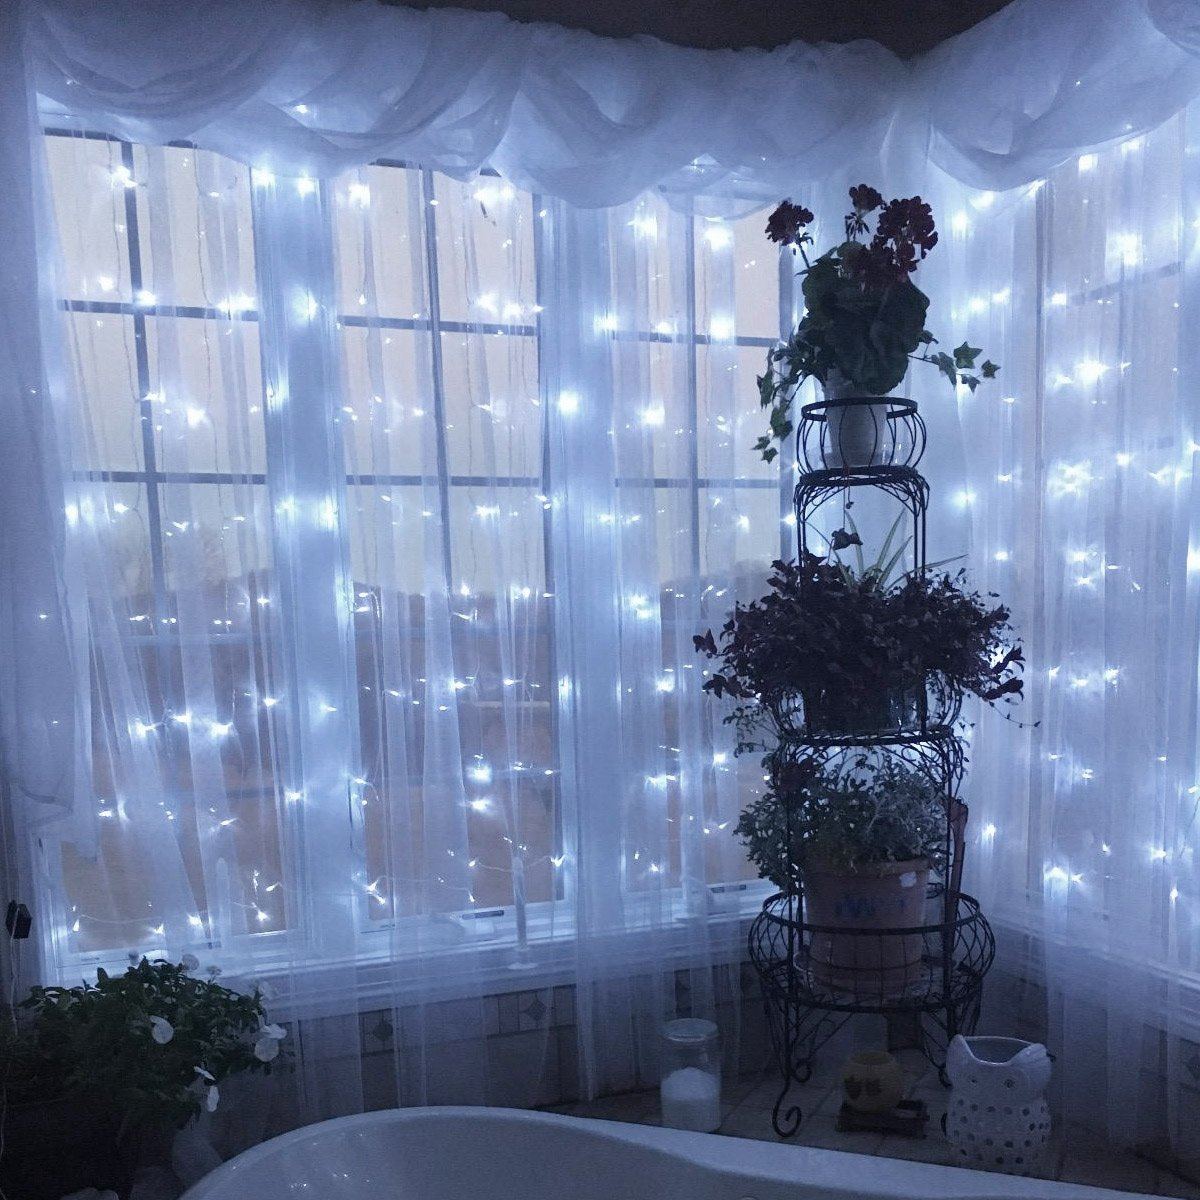 LE 300 LED Window Curtain String Light, Icicle Light String, 9.8ft x 9.8ft, 8 Modes Setting/Timer, Starry Fairy Light String for Indoor Outdoor Wall Wedding Patio Party Decoration (Daylight White)